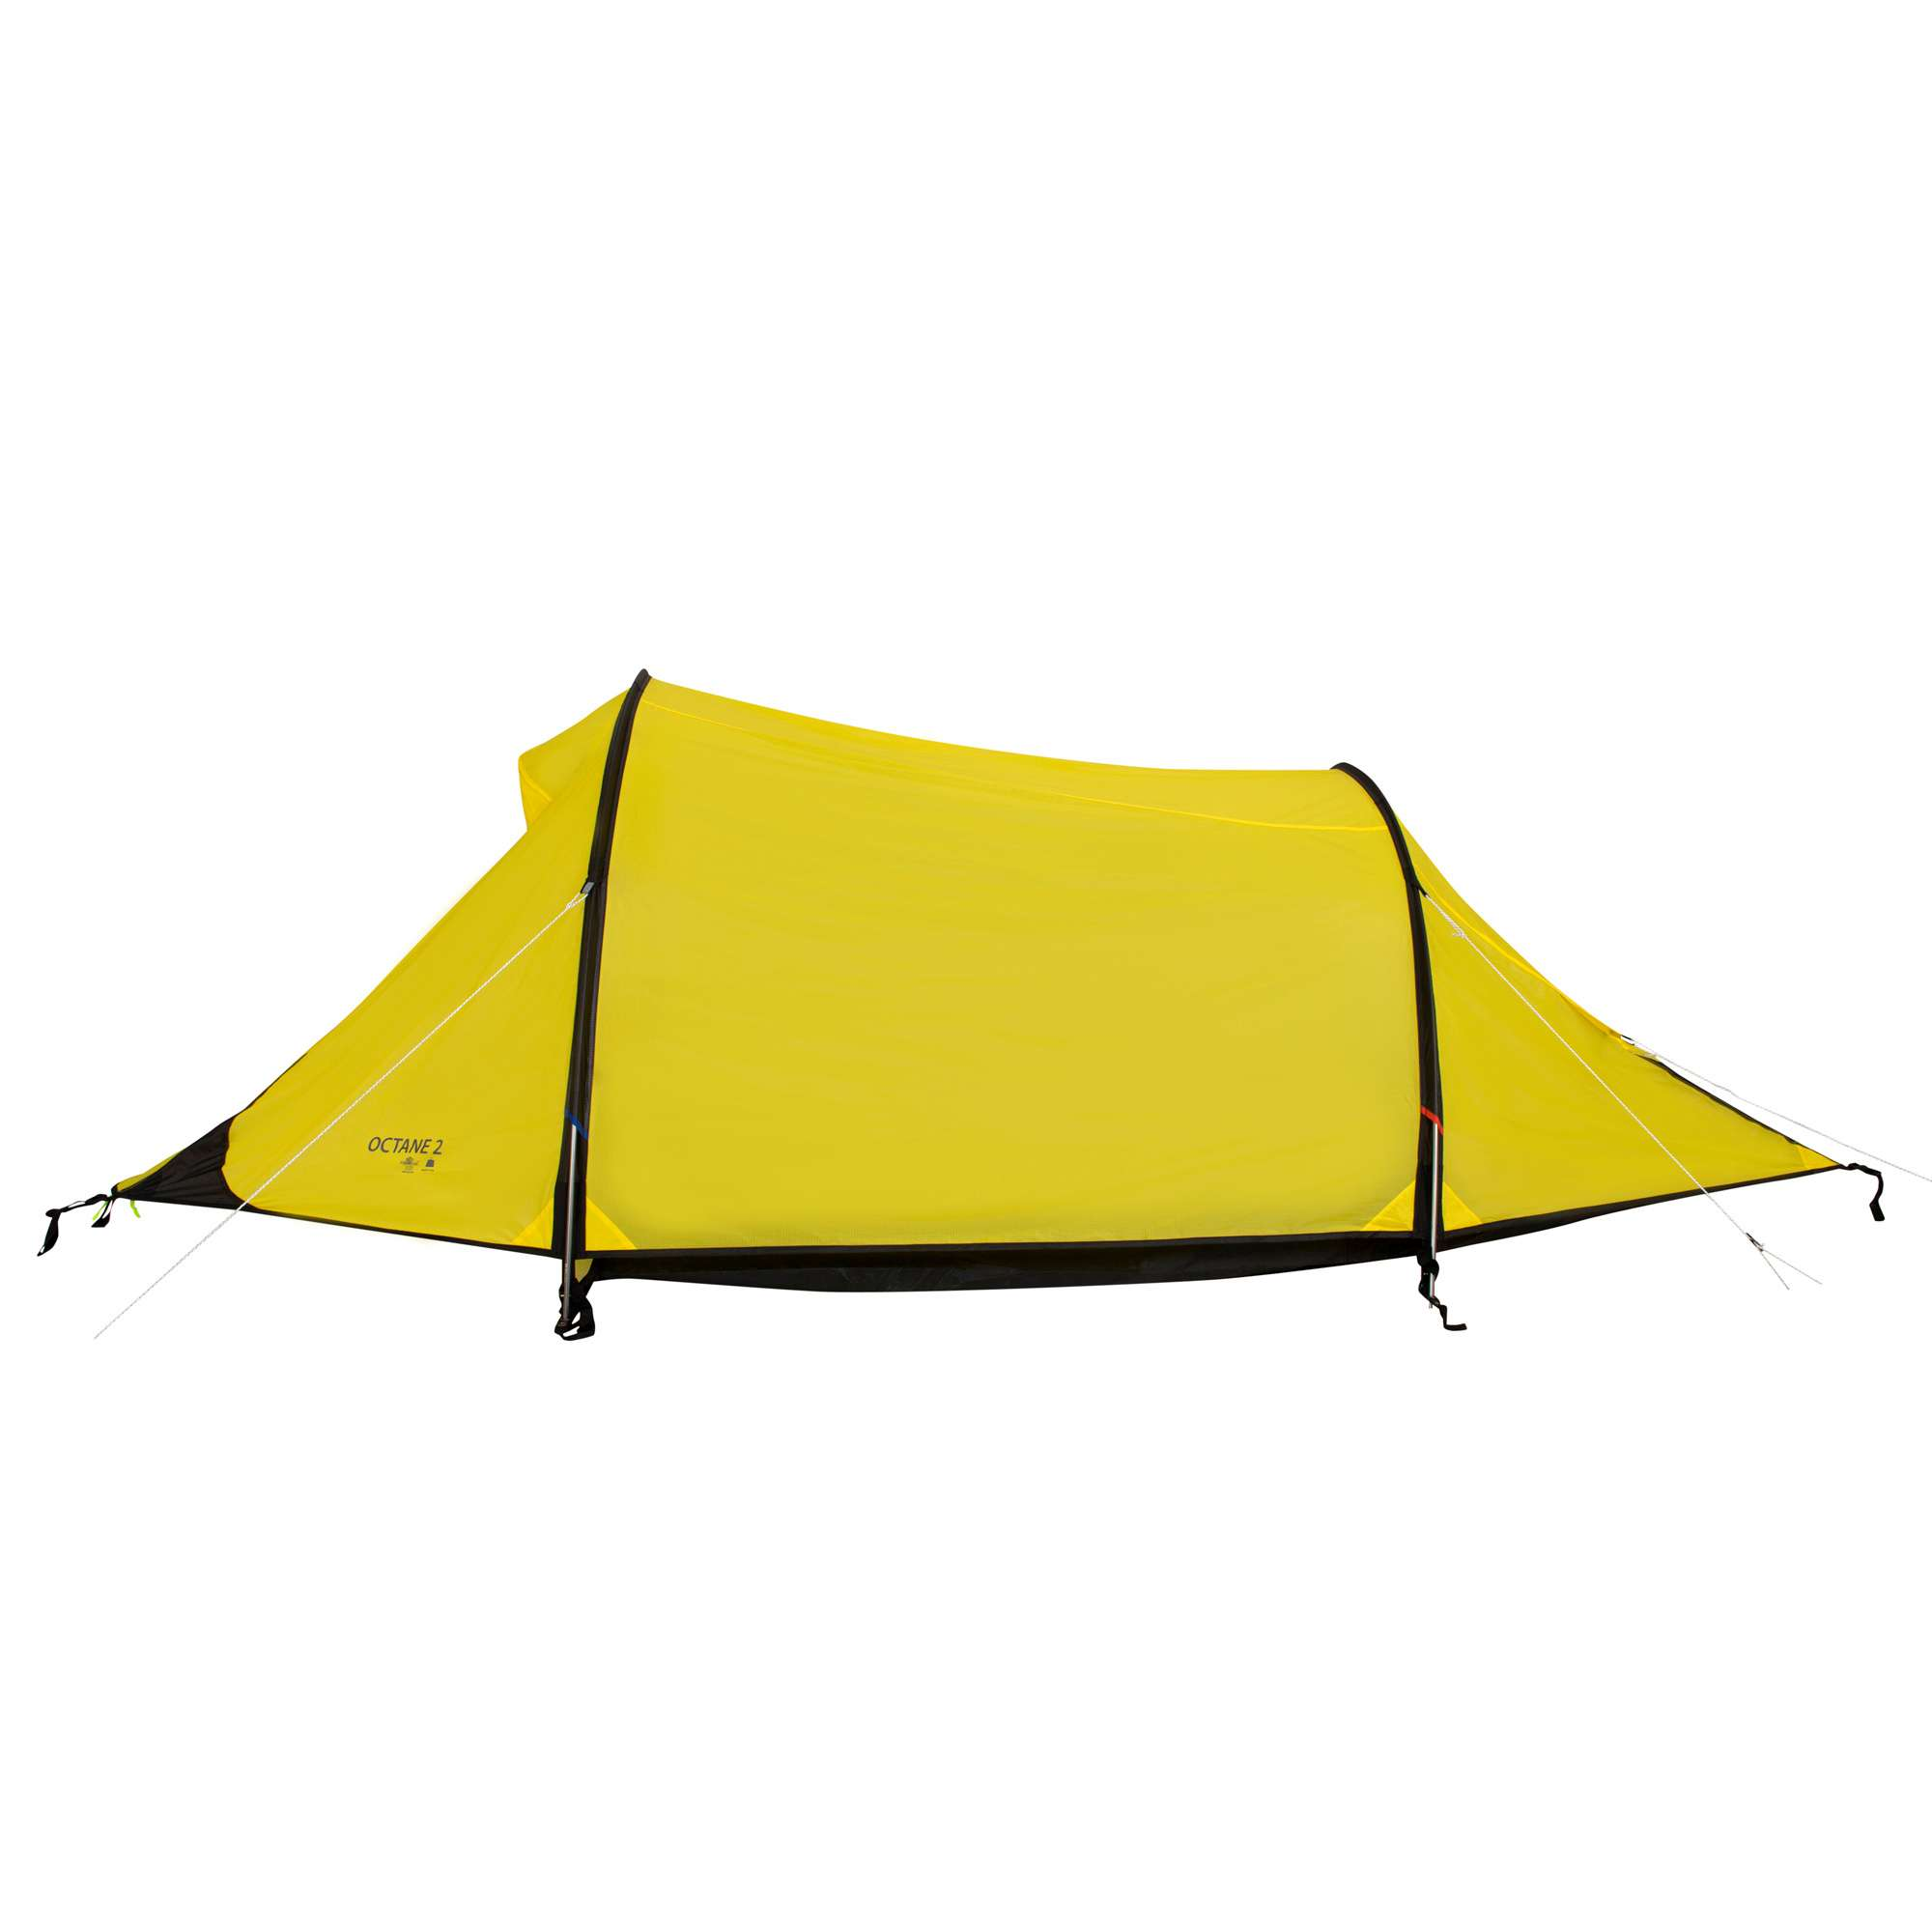 BLACKS Octane 2 Man Tent